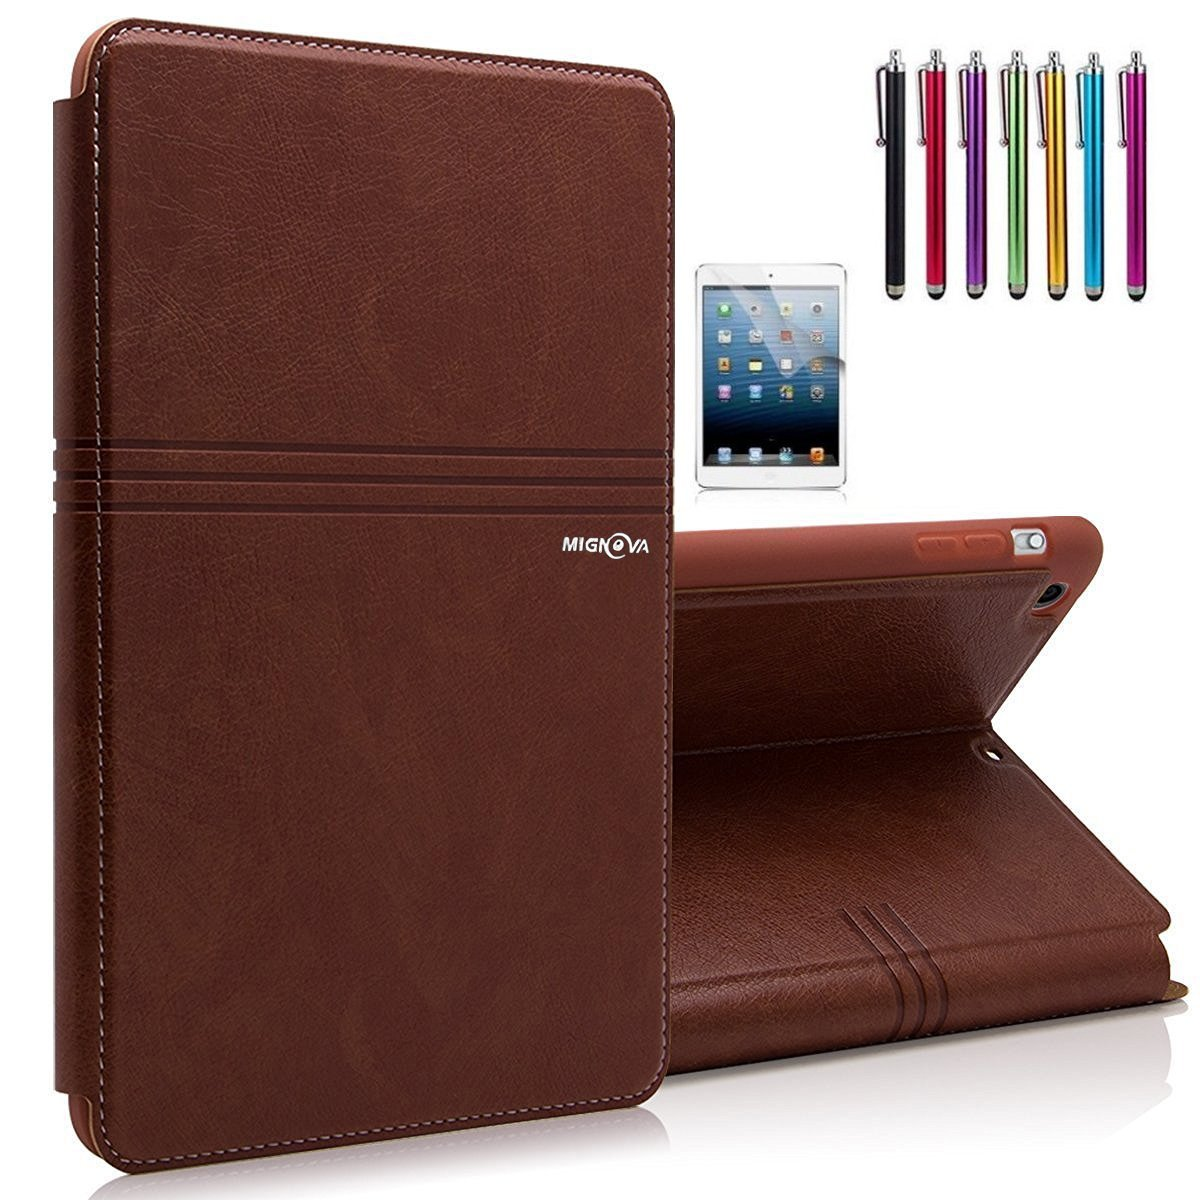 Mignova Slim Lightweight Leather Folio Magnetic Smart Case Cover For Apple iPad Air (iPad 5th Generation, 2013 release) (2nd Brown)